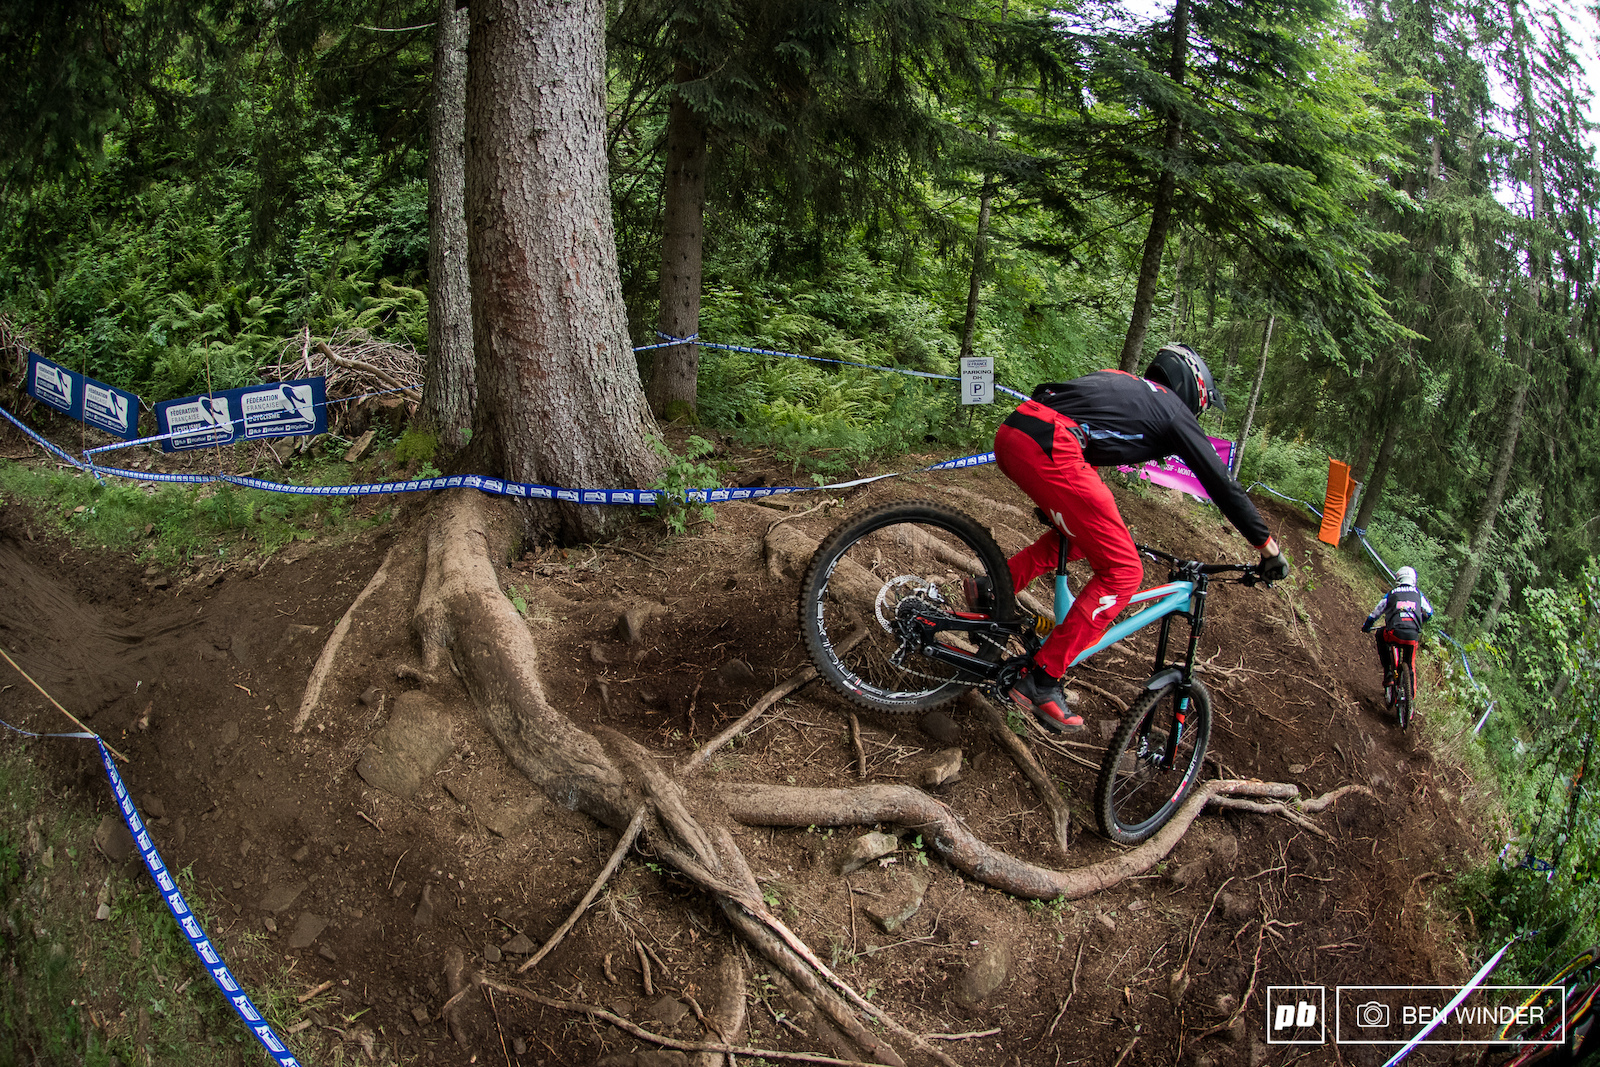 Seeding at Les Carroz - French Downhill Championships 2017